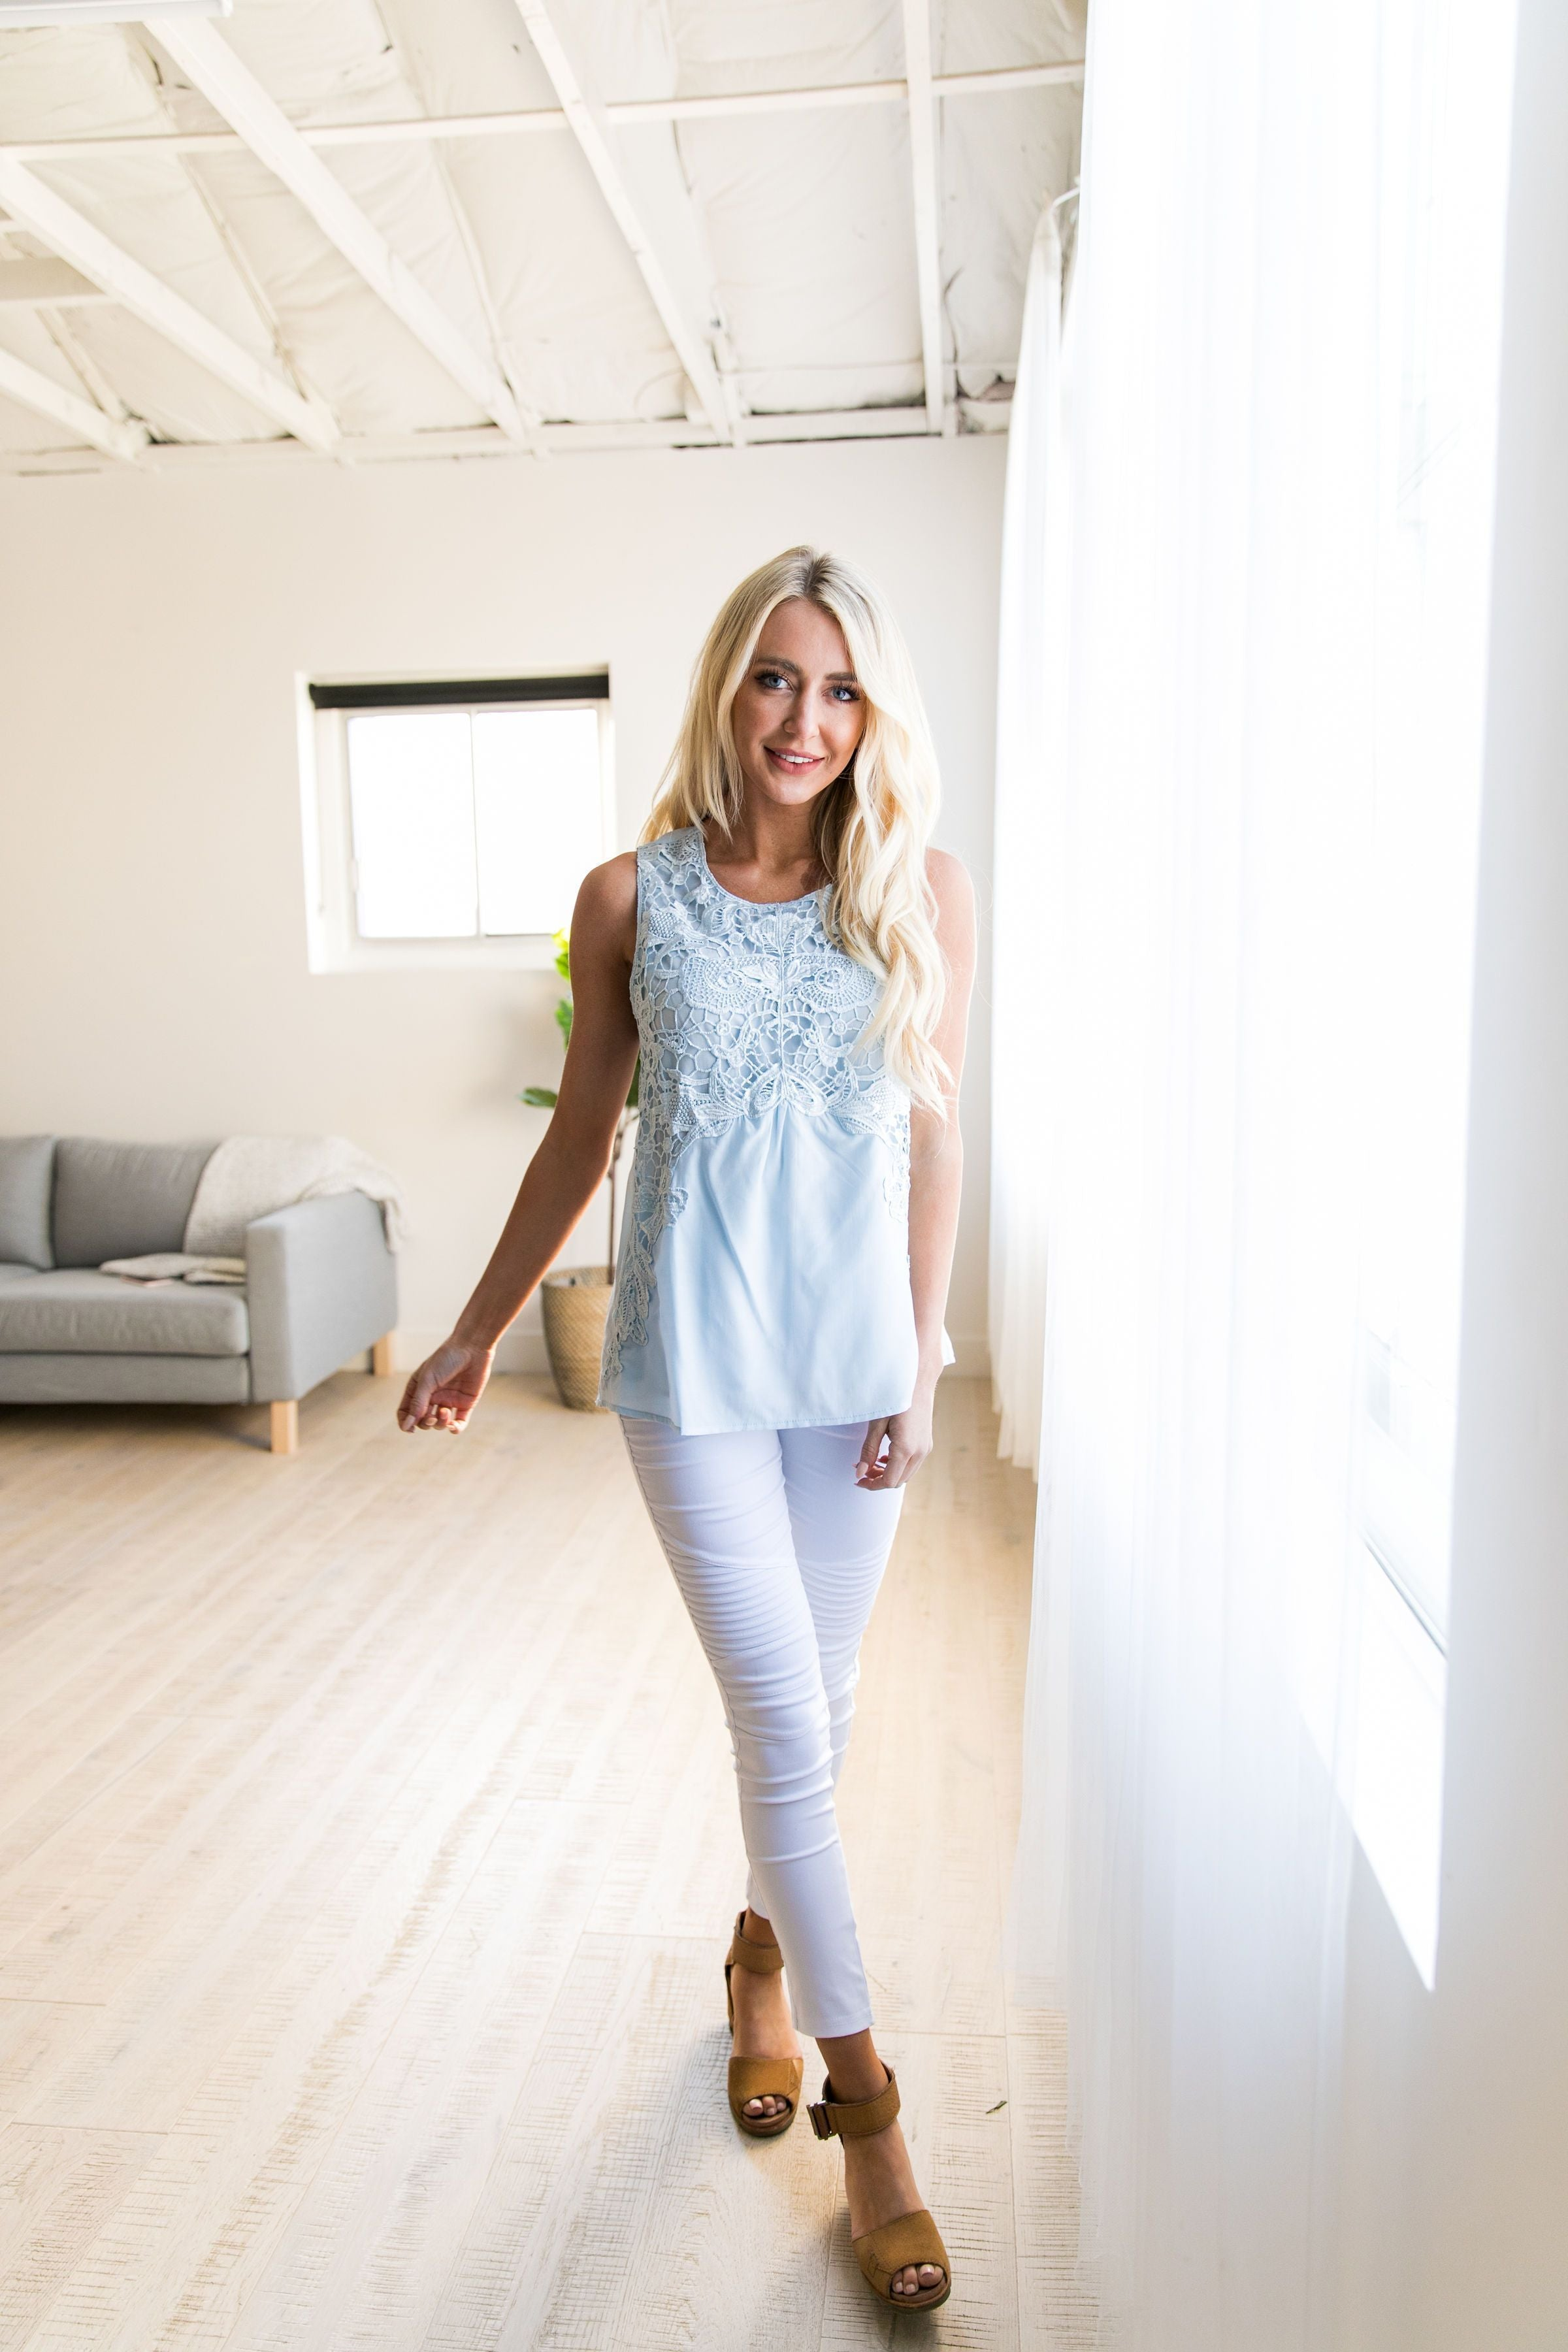 Baby Blue Lace Sleeveless Blouse - ALL SALES FINAL